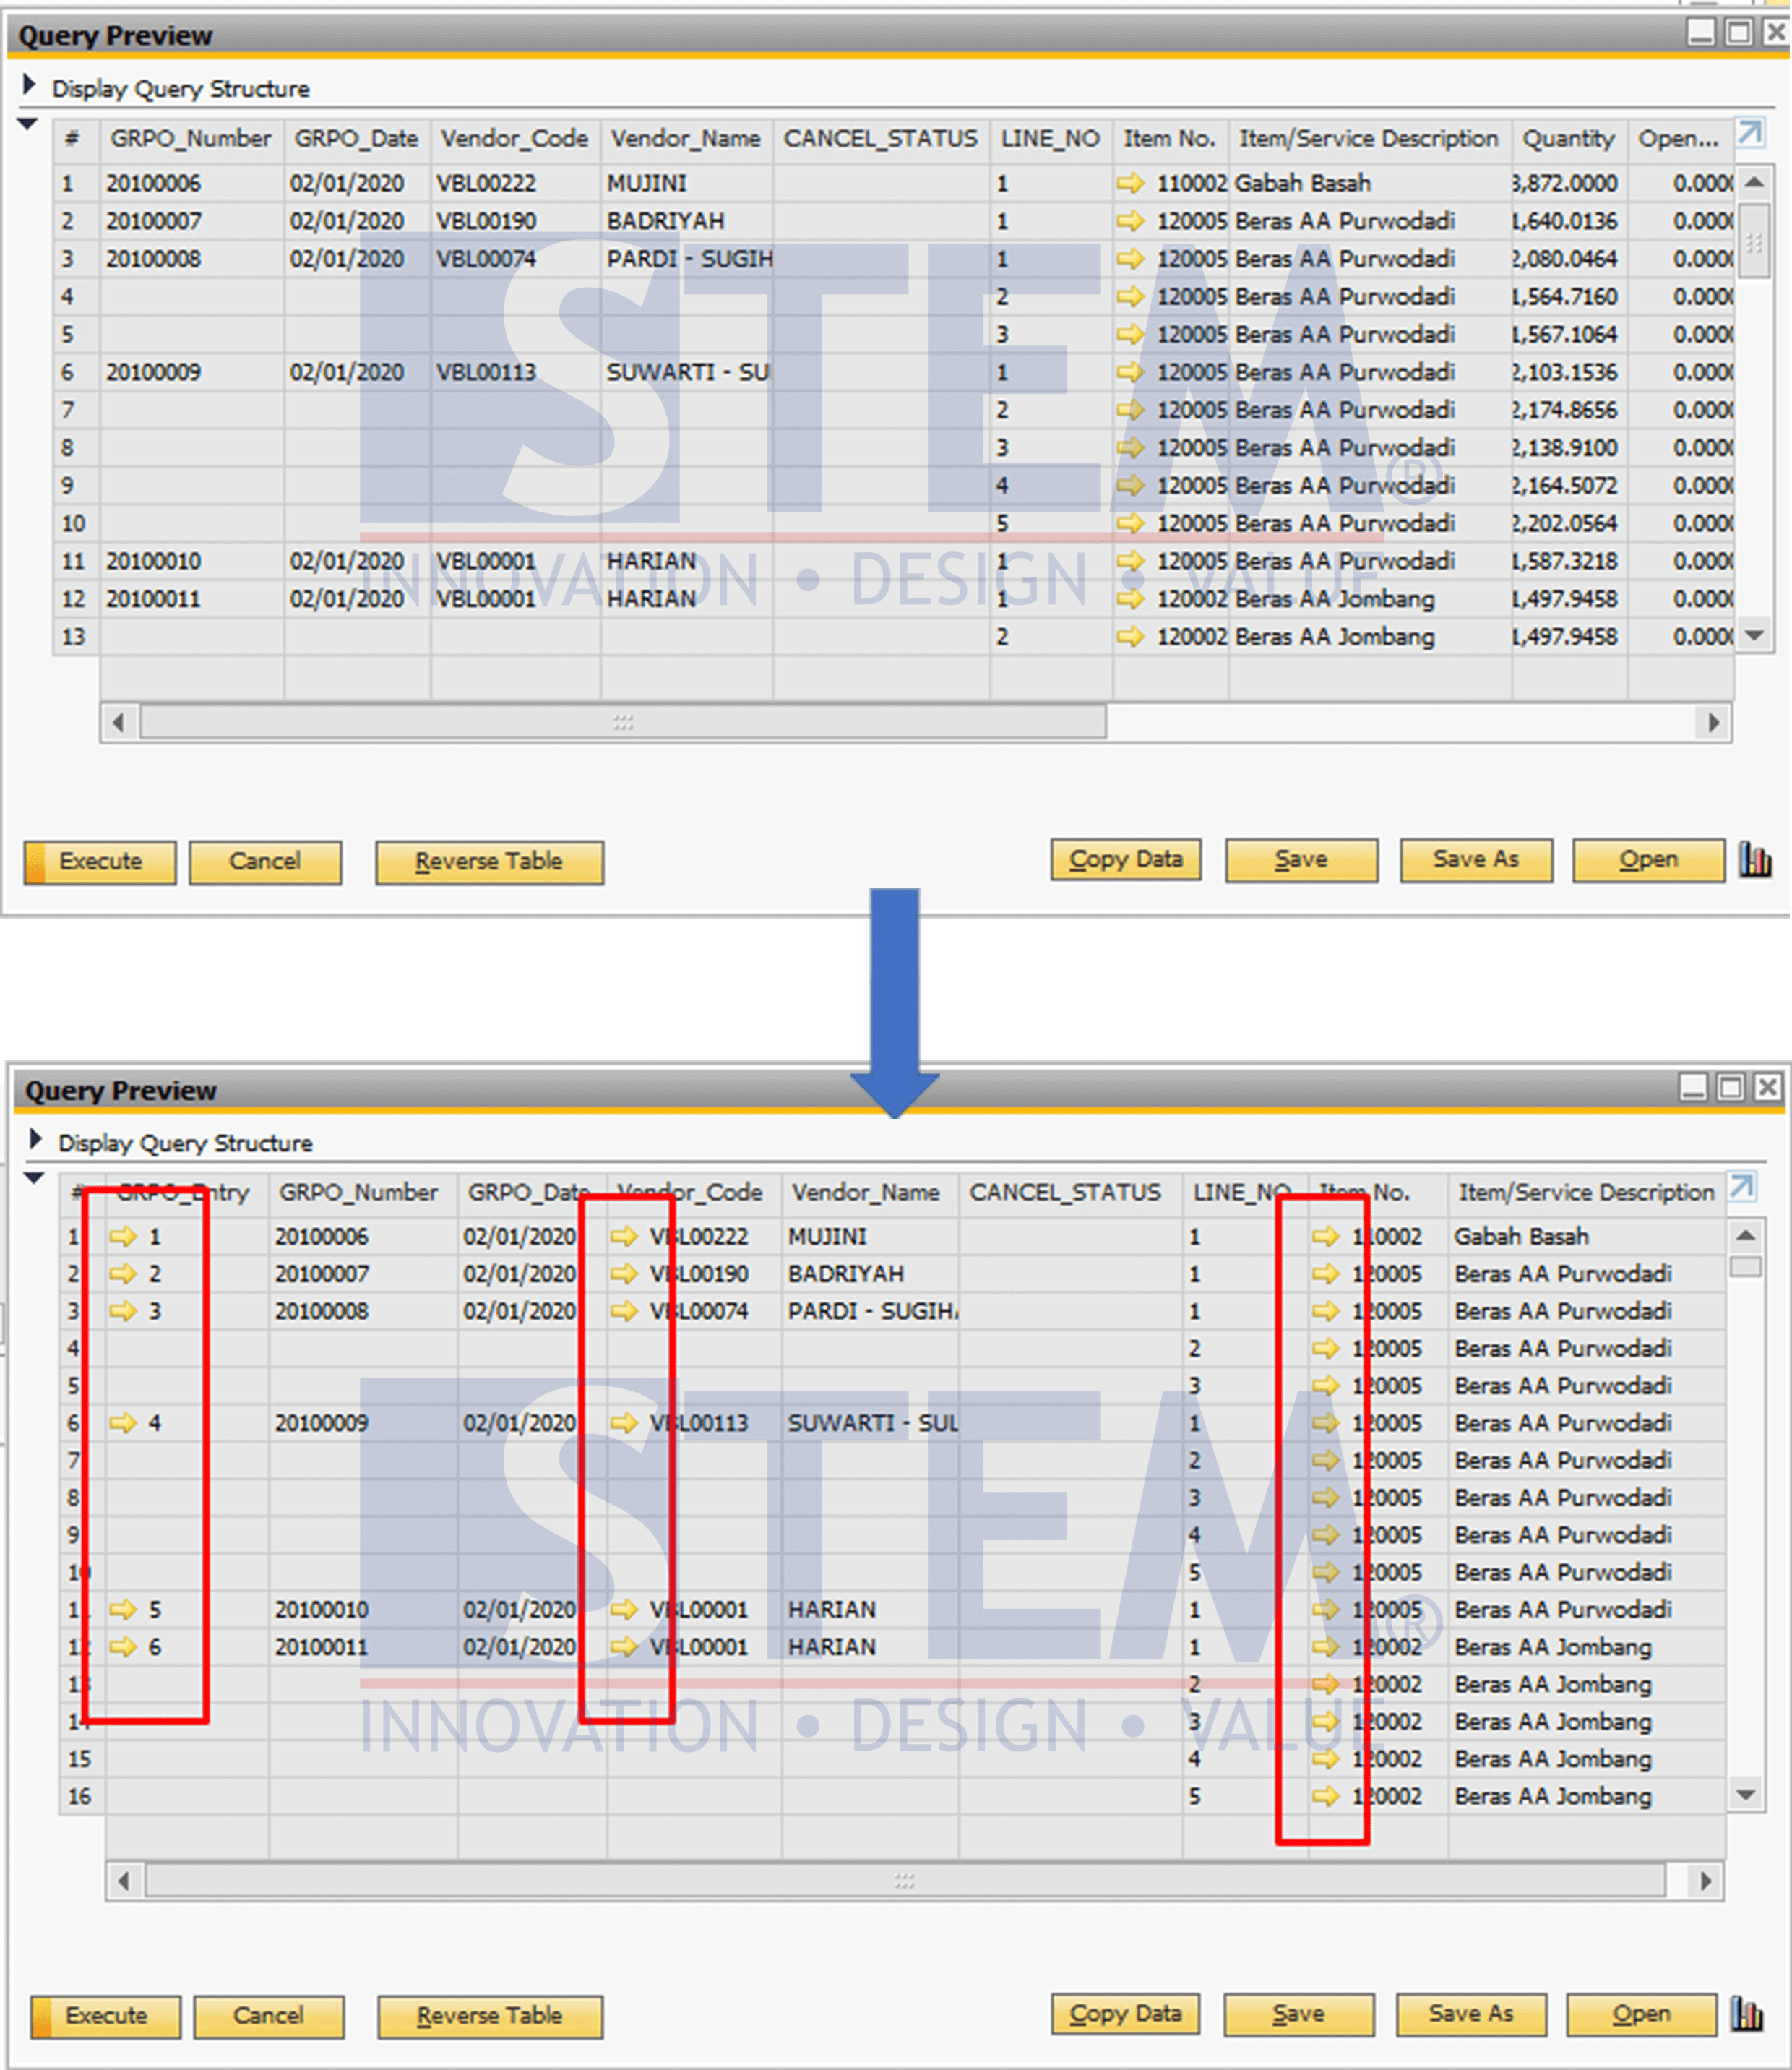 SAP Business One Tips - Custom Report - Adding Golden Arrows to Queries